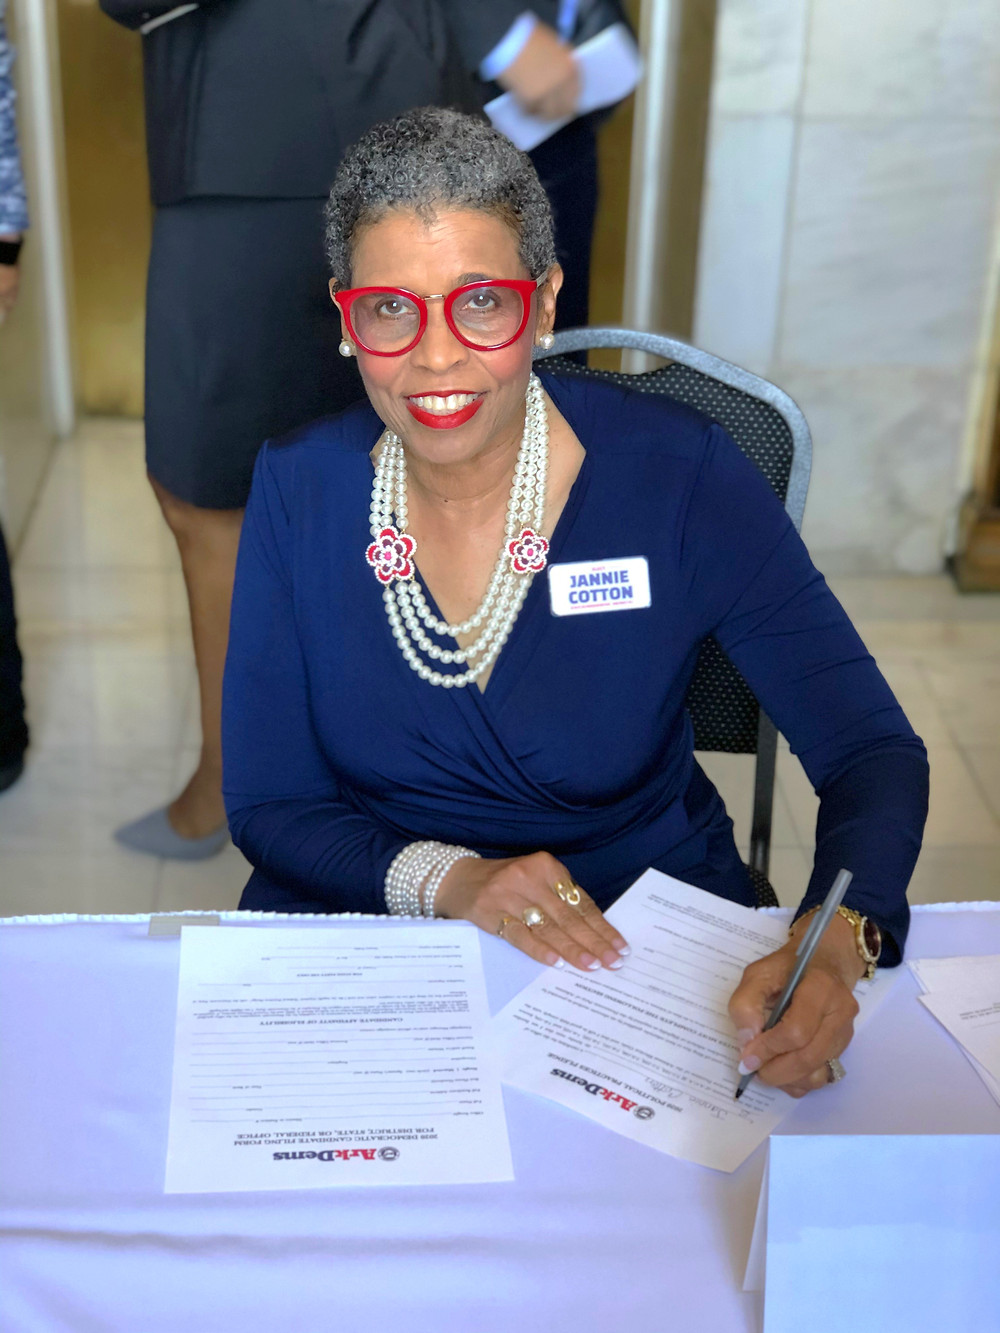 Jannie Cotton officially files to run for office at the Arkansas State Capitol Building